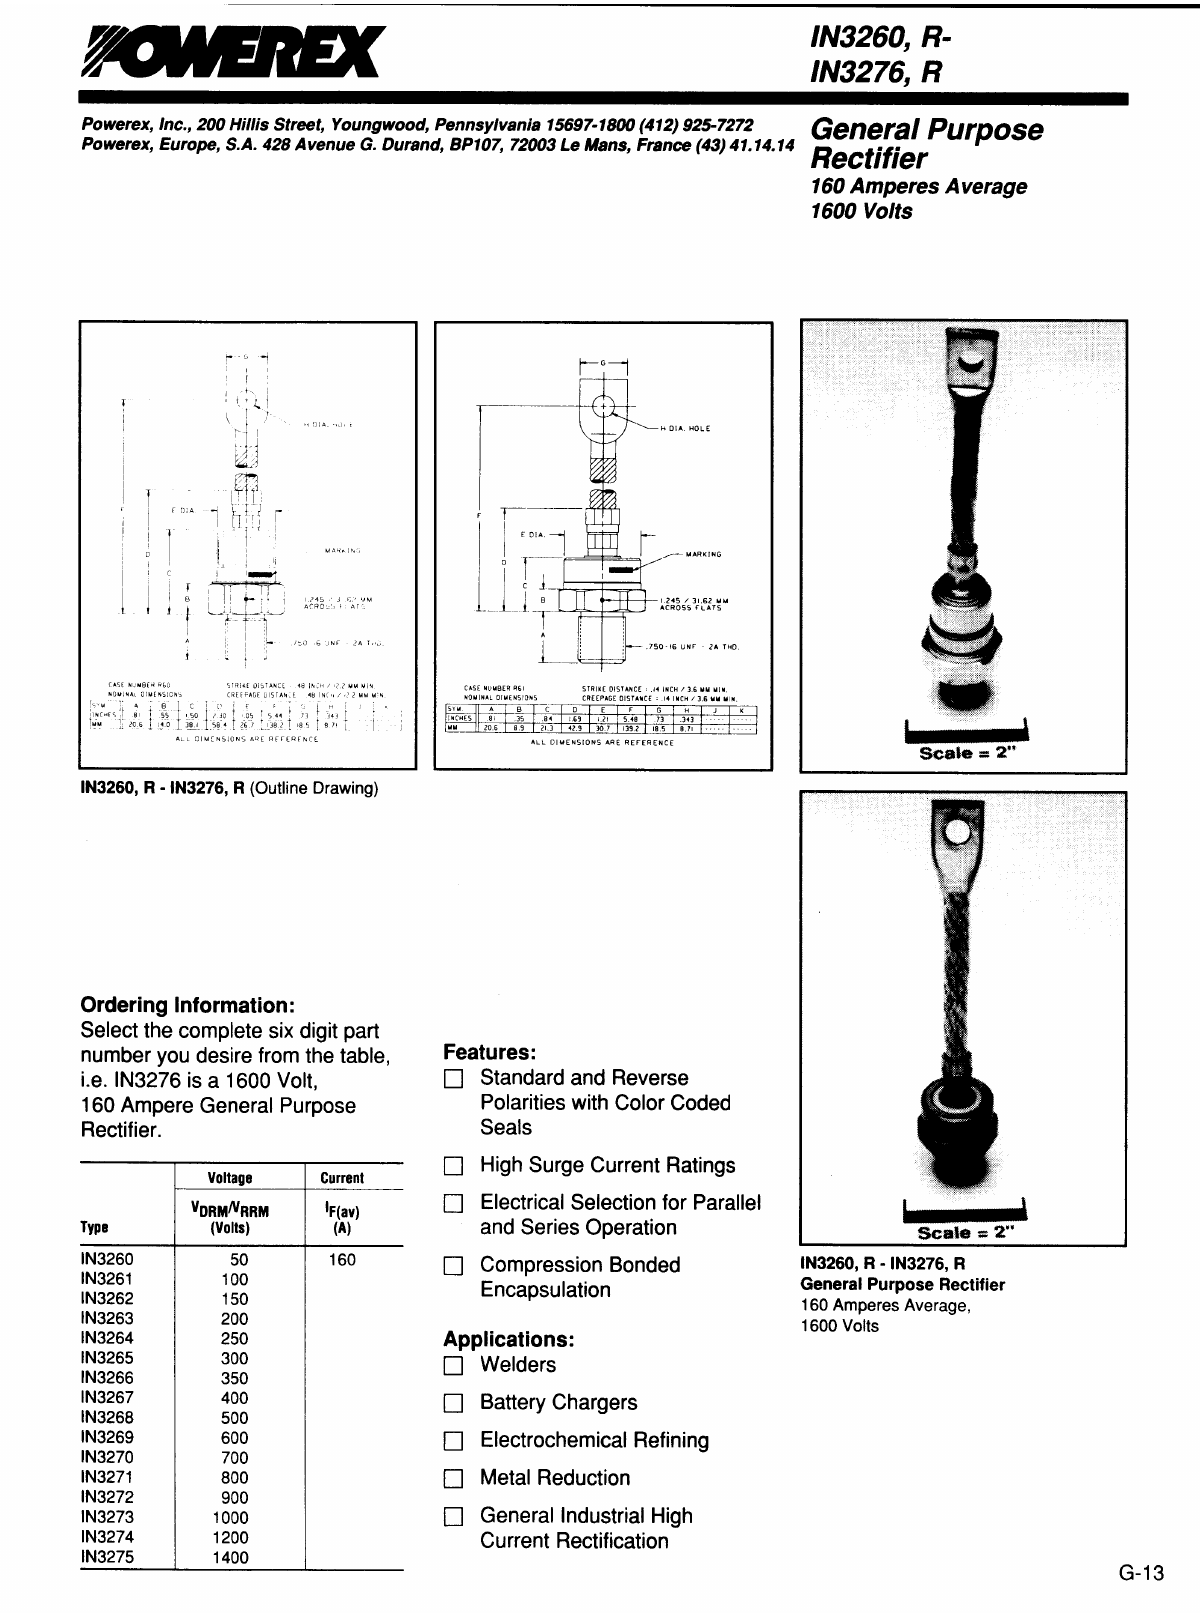 R-IN3266 datasheet